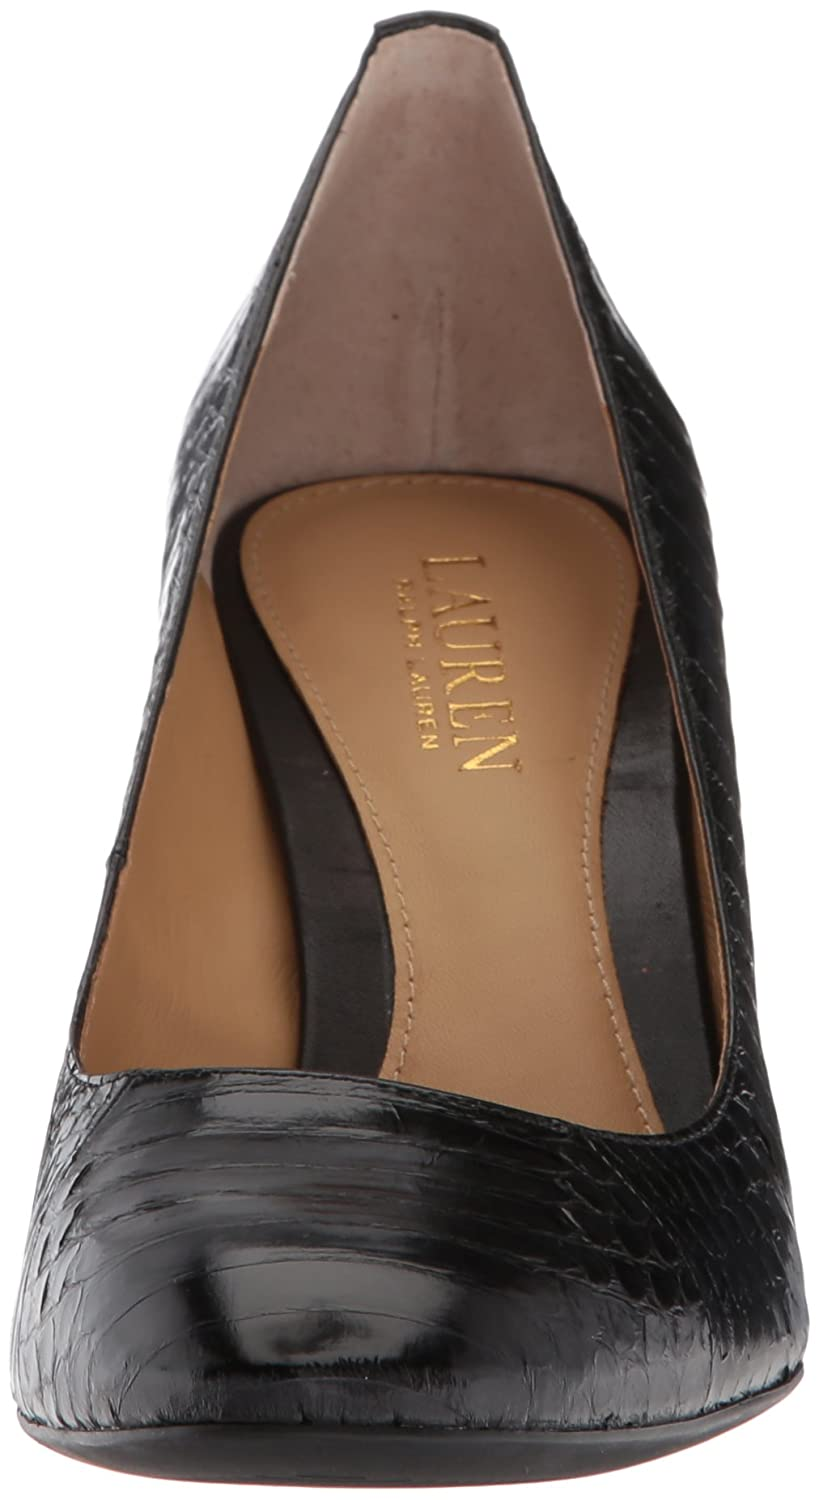 Lauren by Ralph Lauren Women's Maddie US|Black-1 Pump B076DB4V71 8 B(M) US|Black-1 Maddie 8c0b40